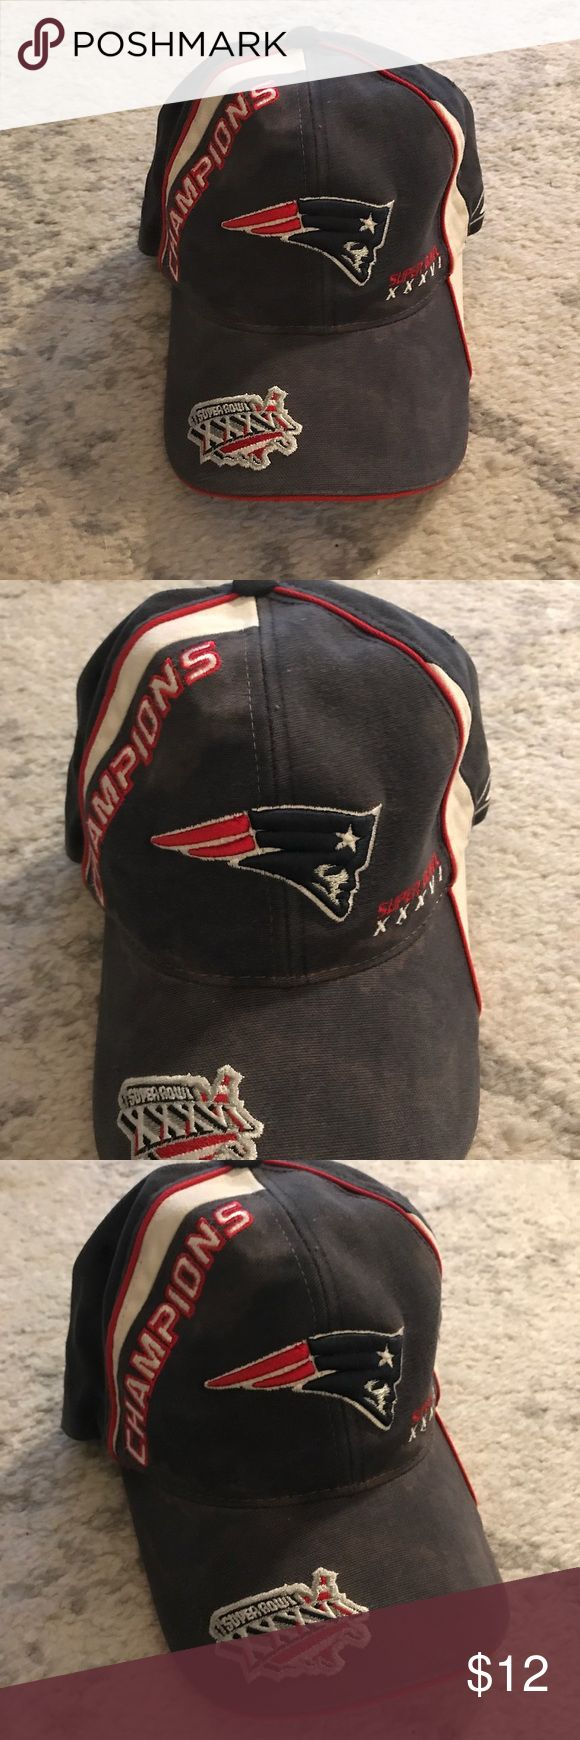 Blue & red New England Patriots Super Bowl hat Faded, pale blue microfiber hat with white and red trimming by Reebok for the NFL football team New England Patriots. The hat has the Patriots logo on the front and Super Bowl XXXVI Champions on it with the Super Bowl United States country flag logo on the brim of it. The hat has an adjustable Velcro strap on the back, and is designed to be one size fits all. 100% cotton. The hat has some water discoloration on it, but besides that is in good…